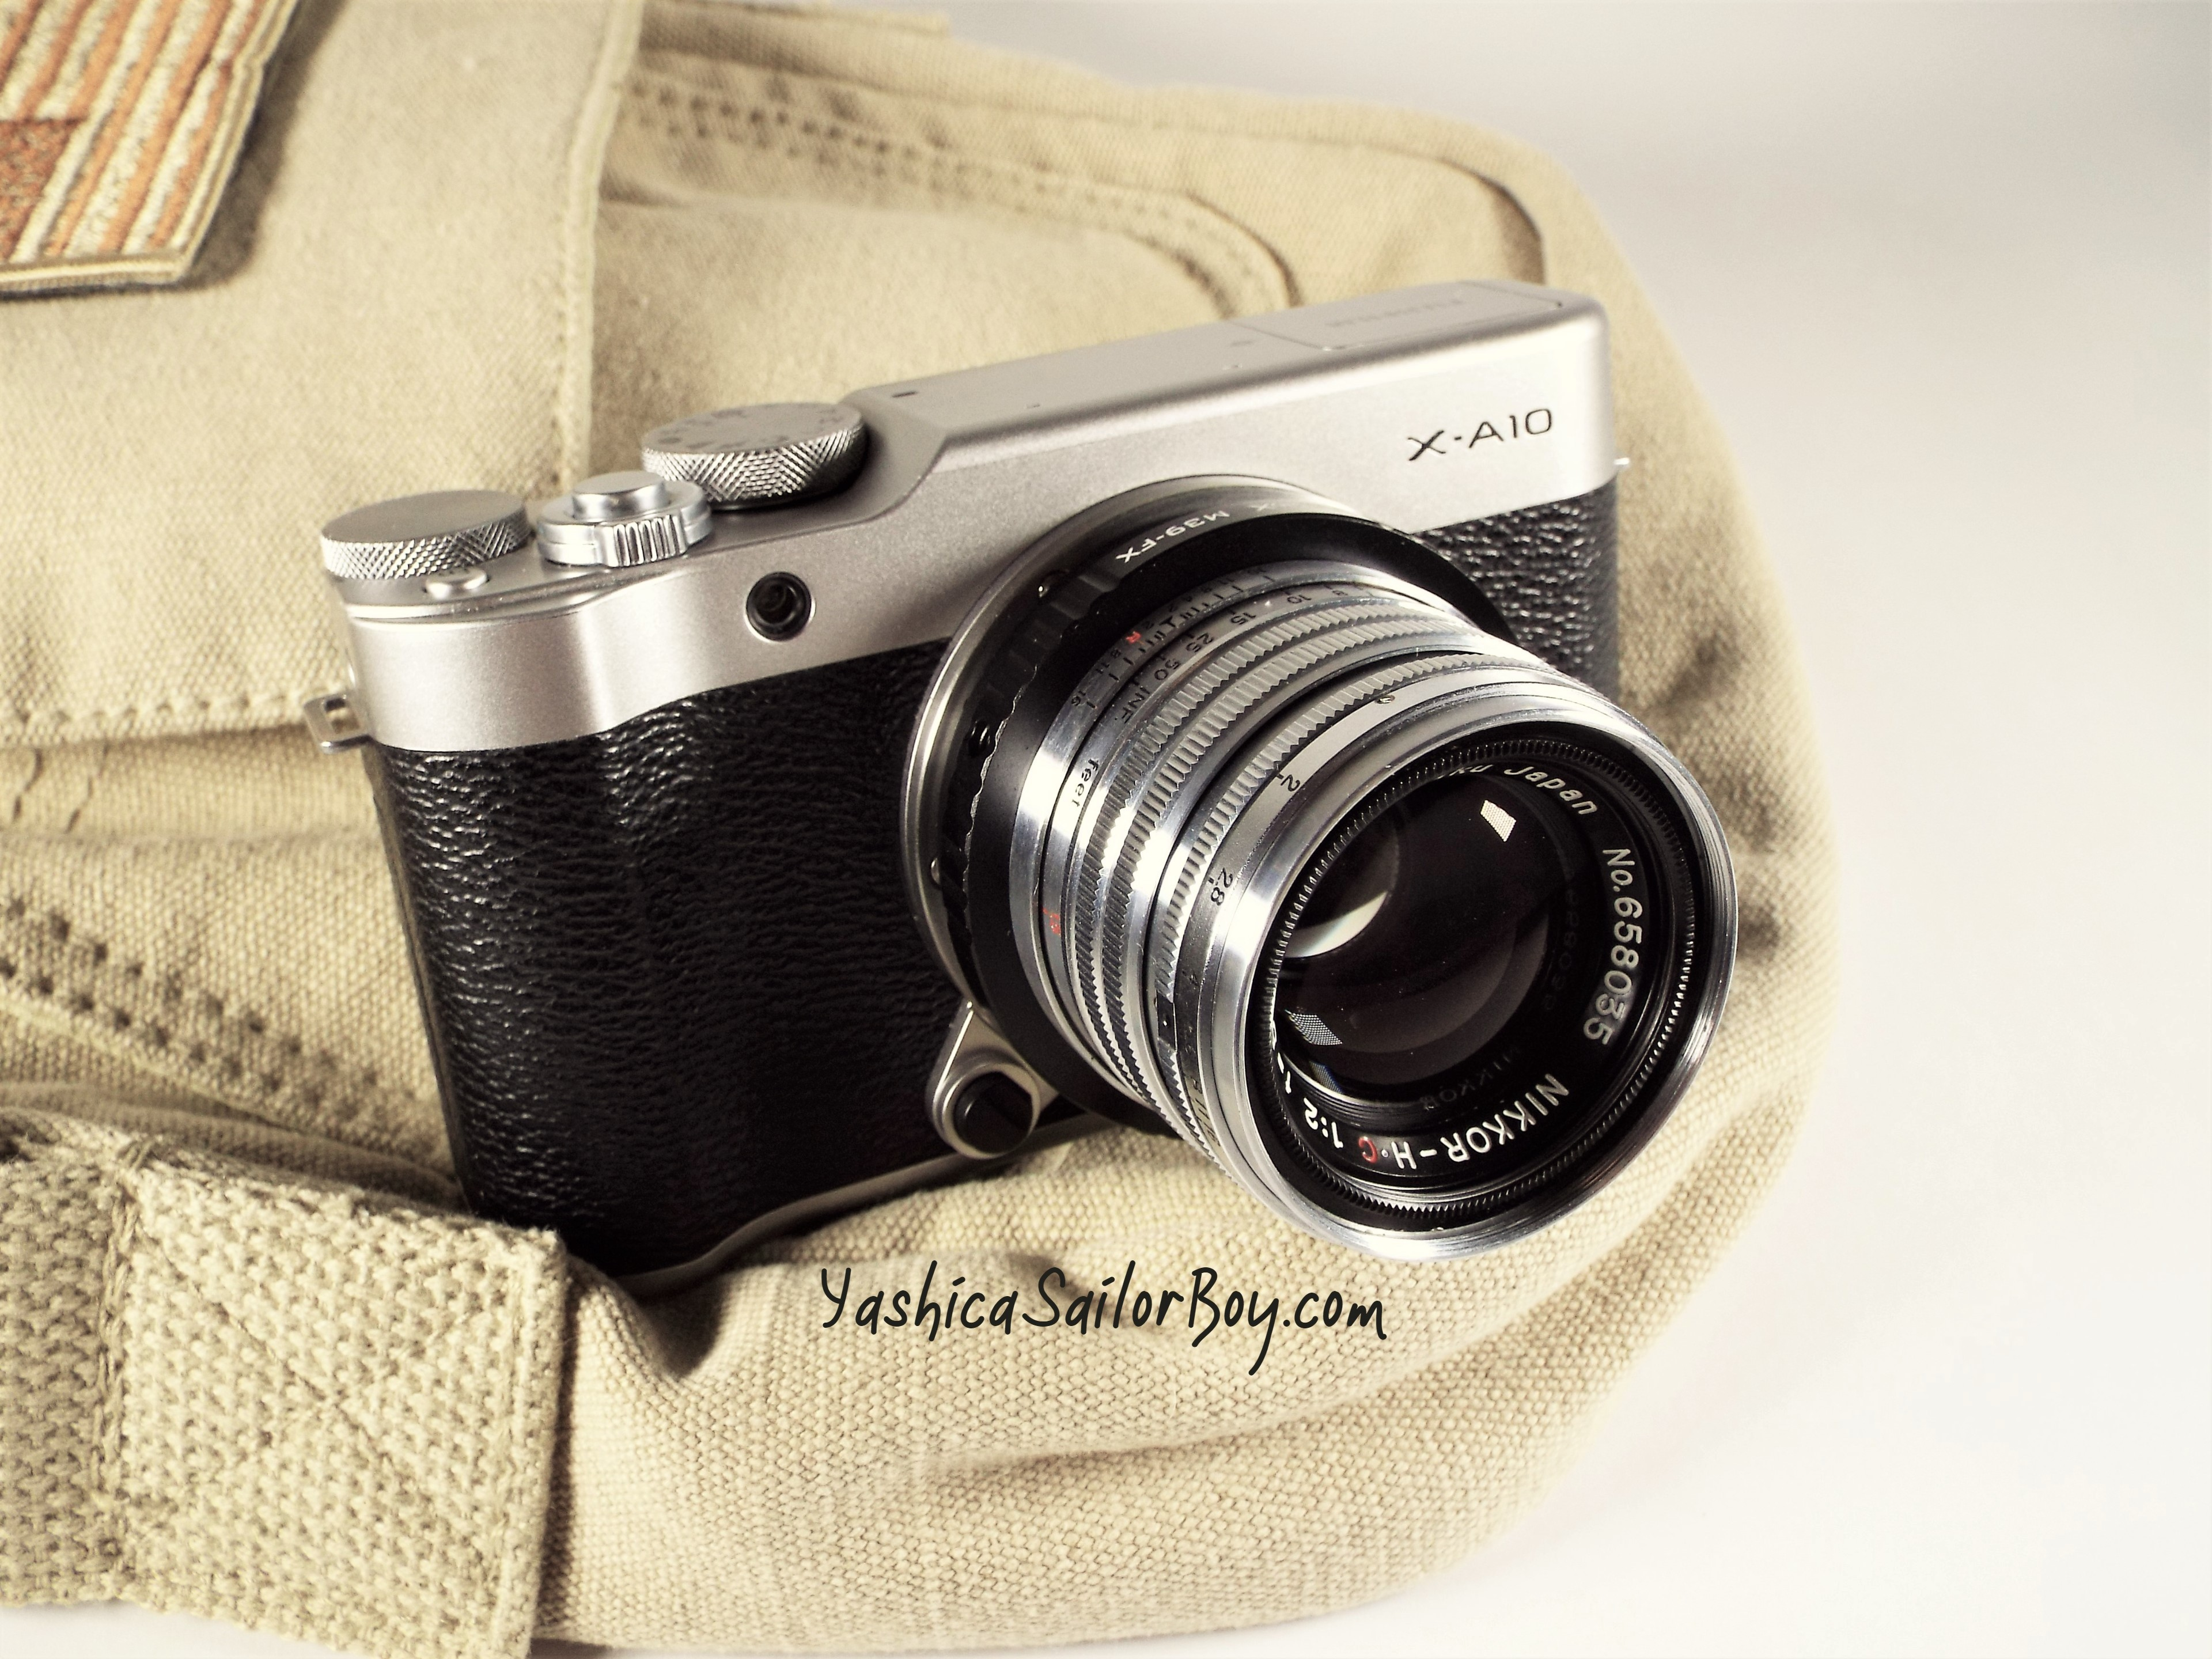 Fujifilm X-A10 with Nikkor